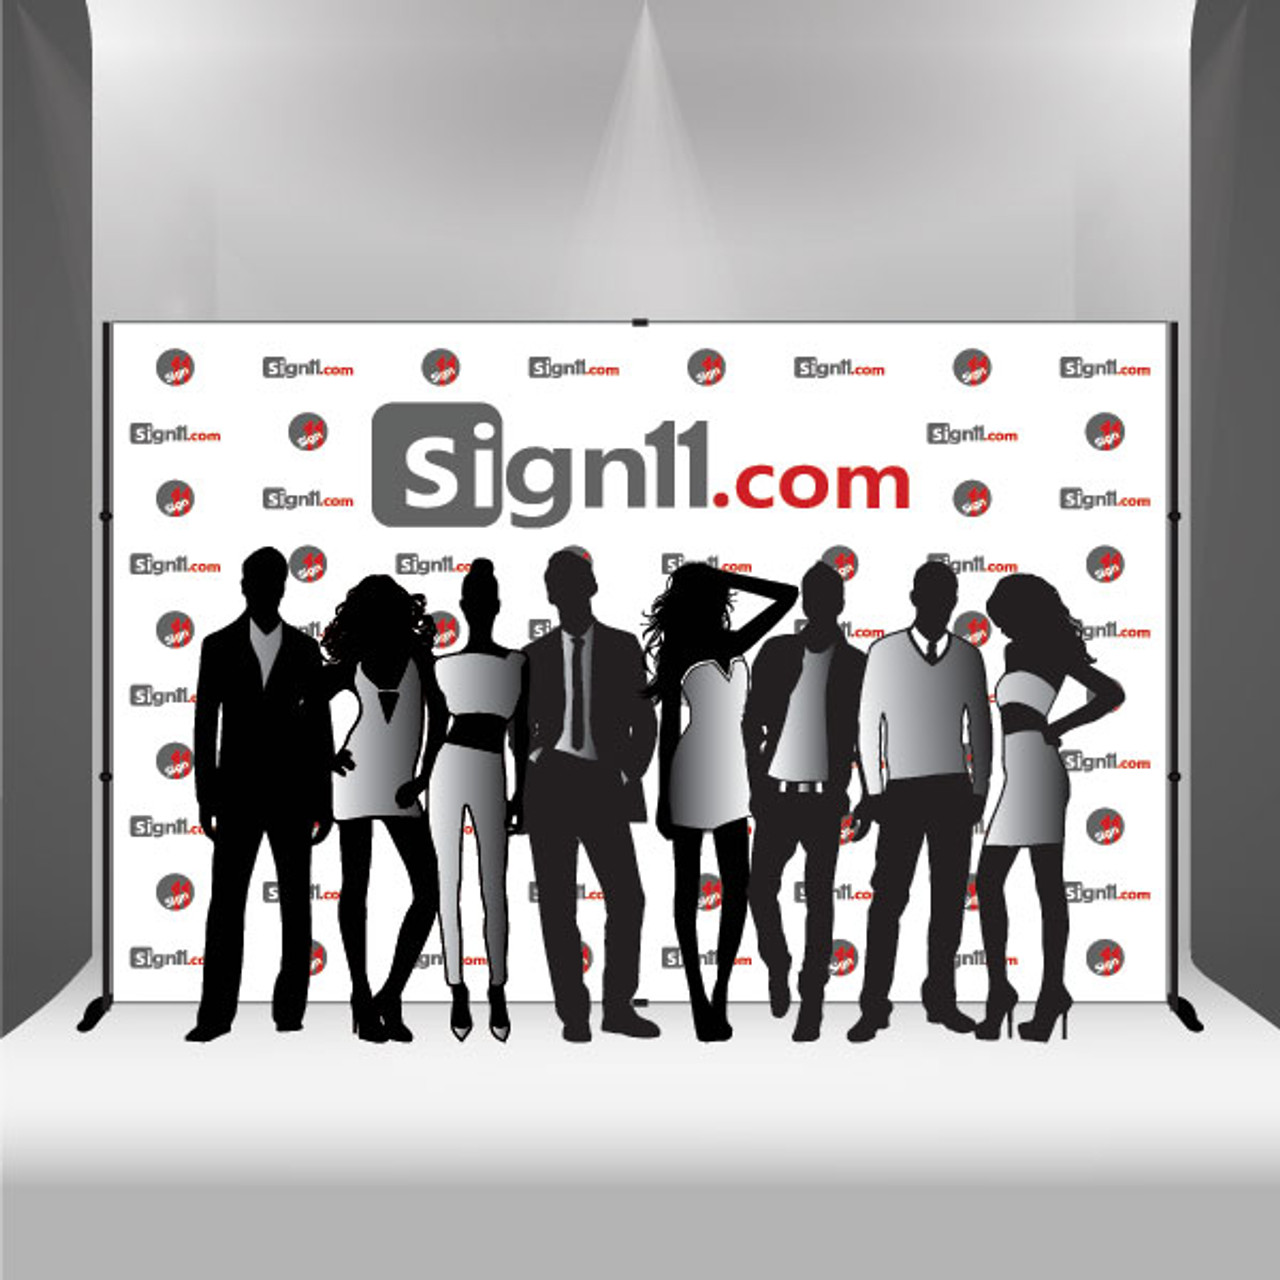 step and repeat 12 x8 stand sign11 com